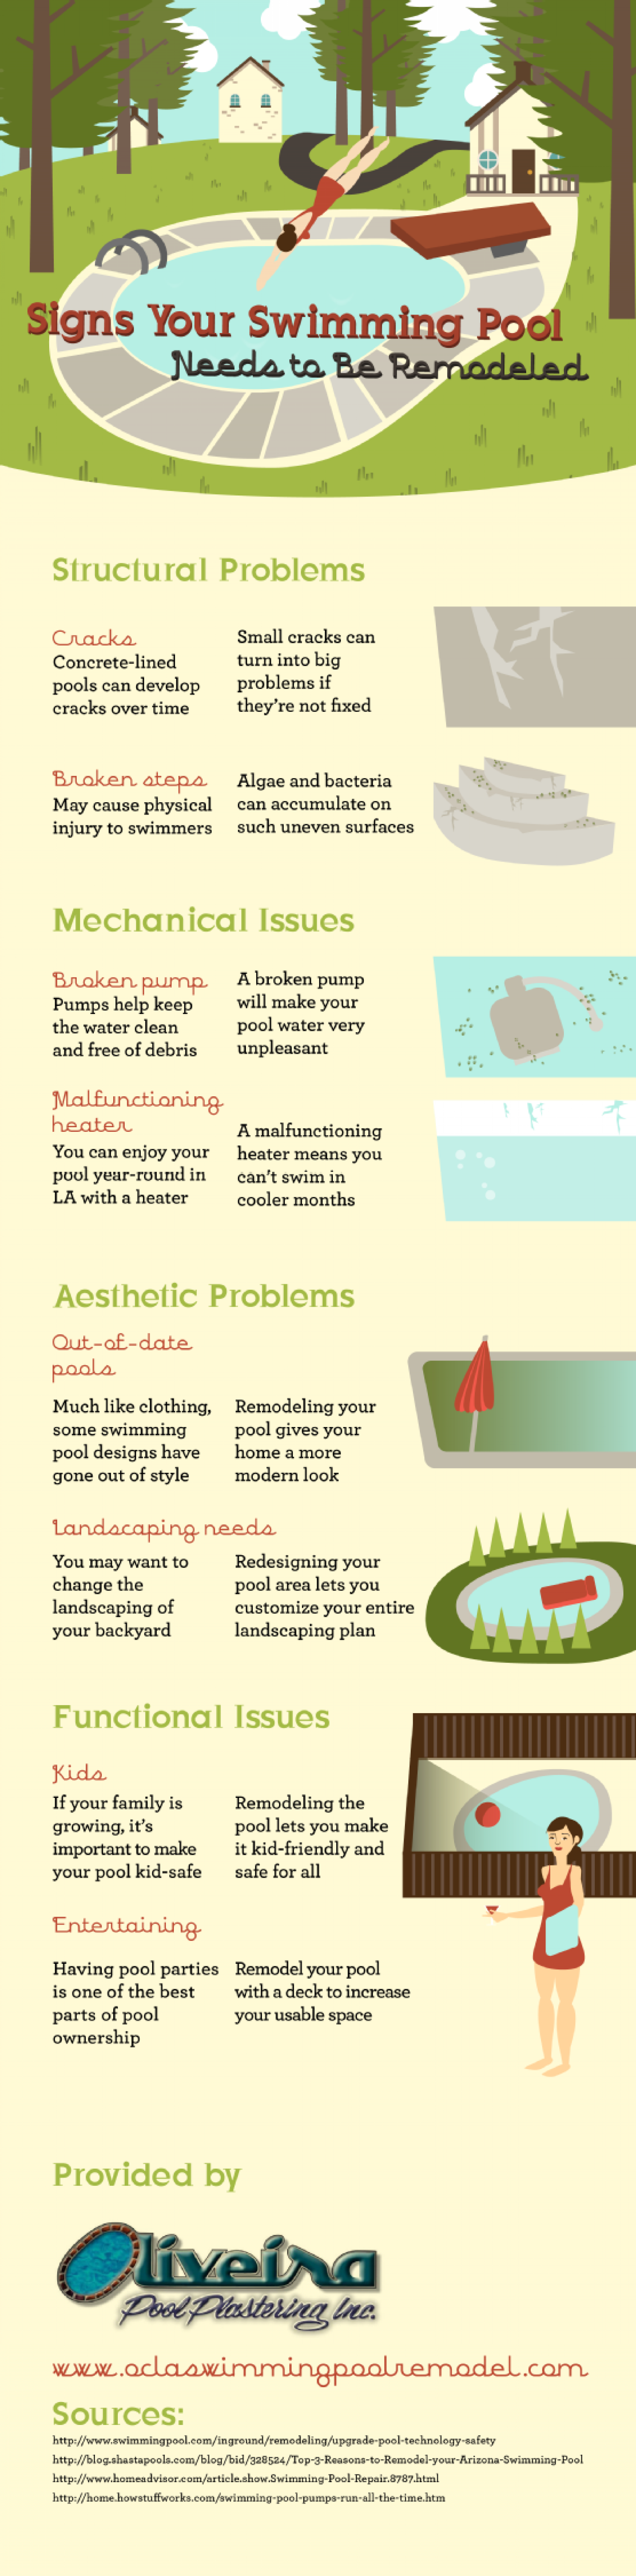 Signs Your Swimming Pool Needs to Be Remodeled